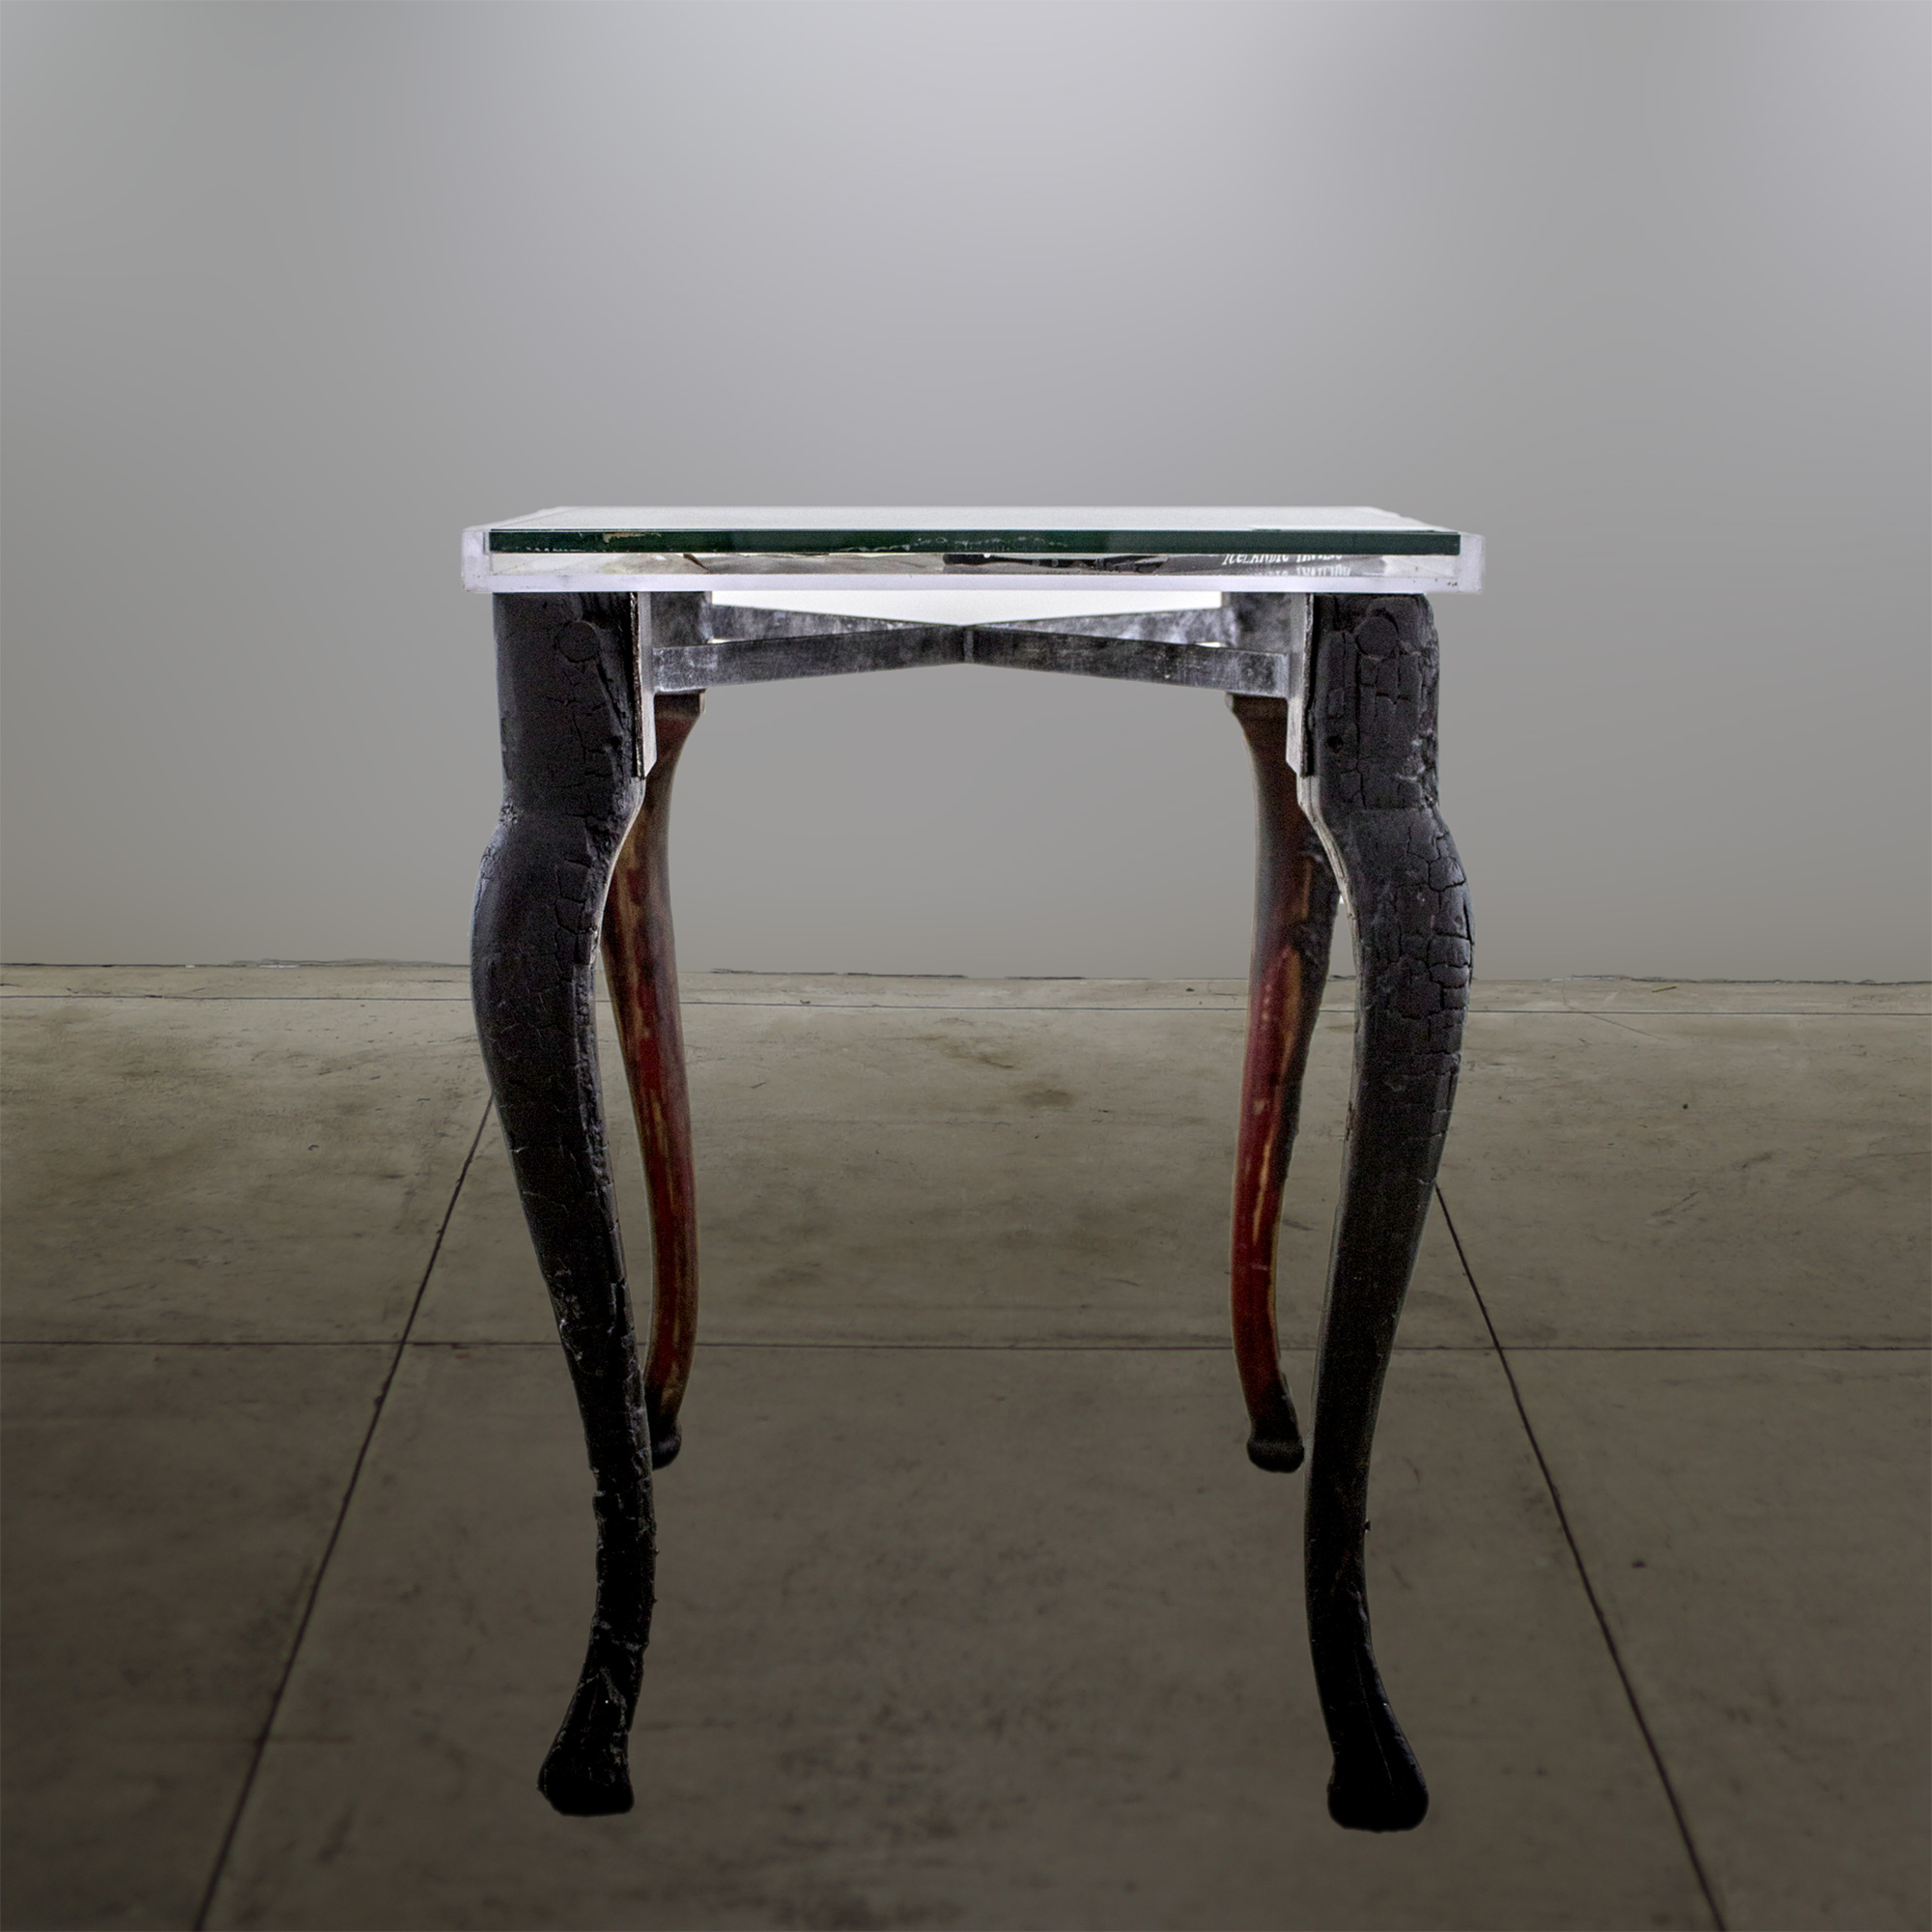 """Champagne Side Table"" - Burned table legs and acrylic top - 21""x21""x29-1/2"" - © Flavio Bisciotti"